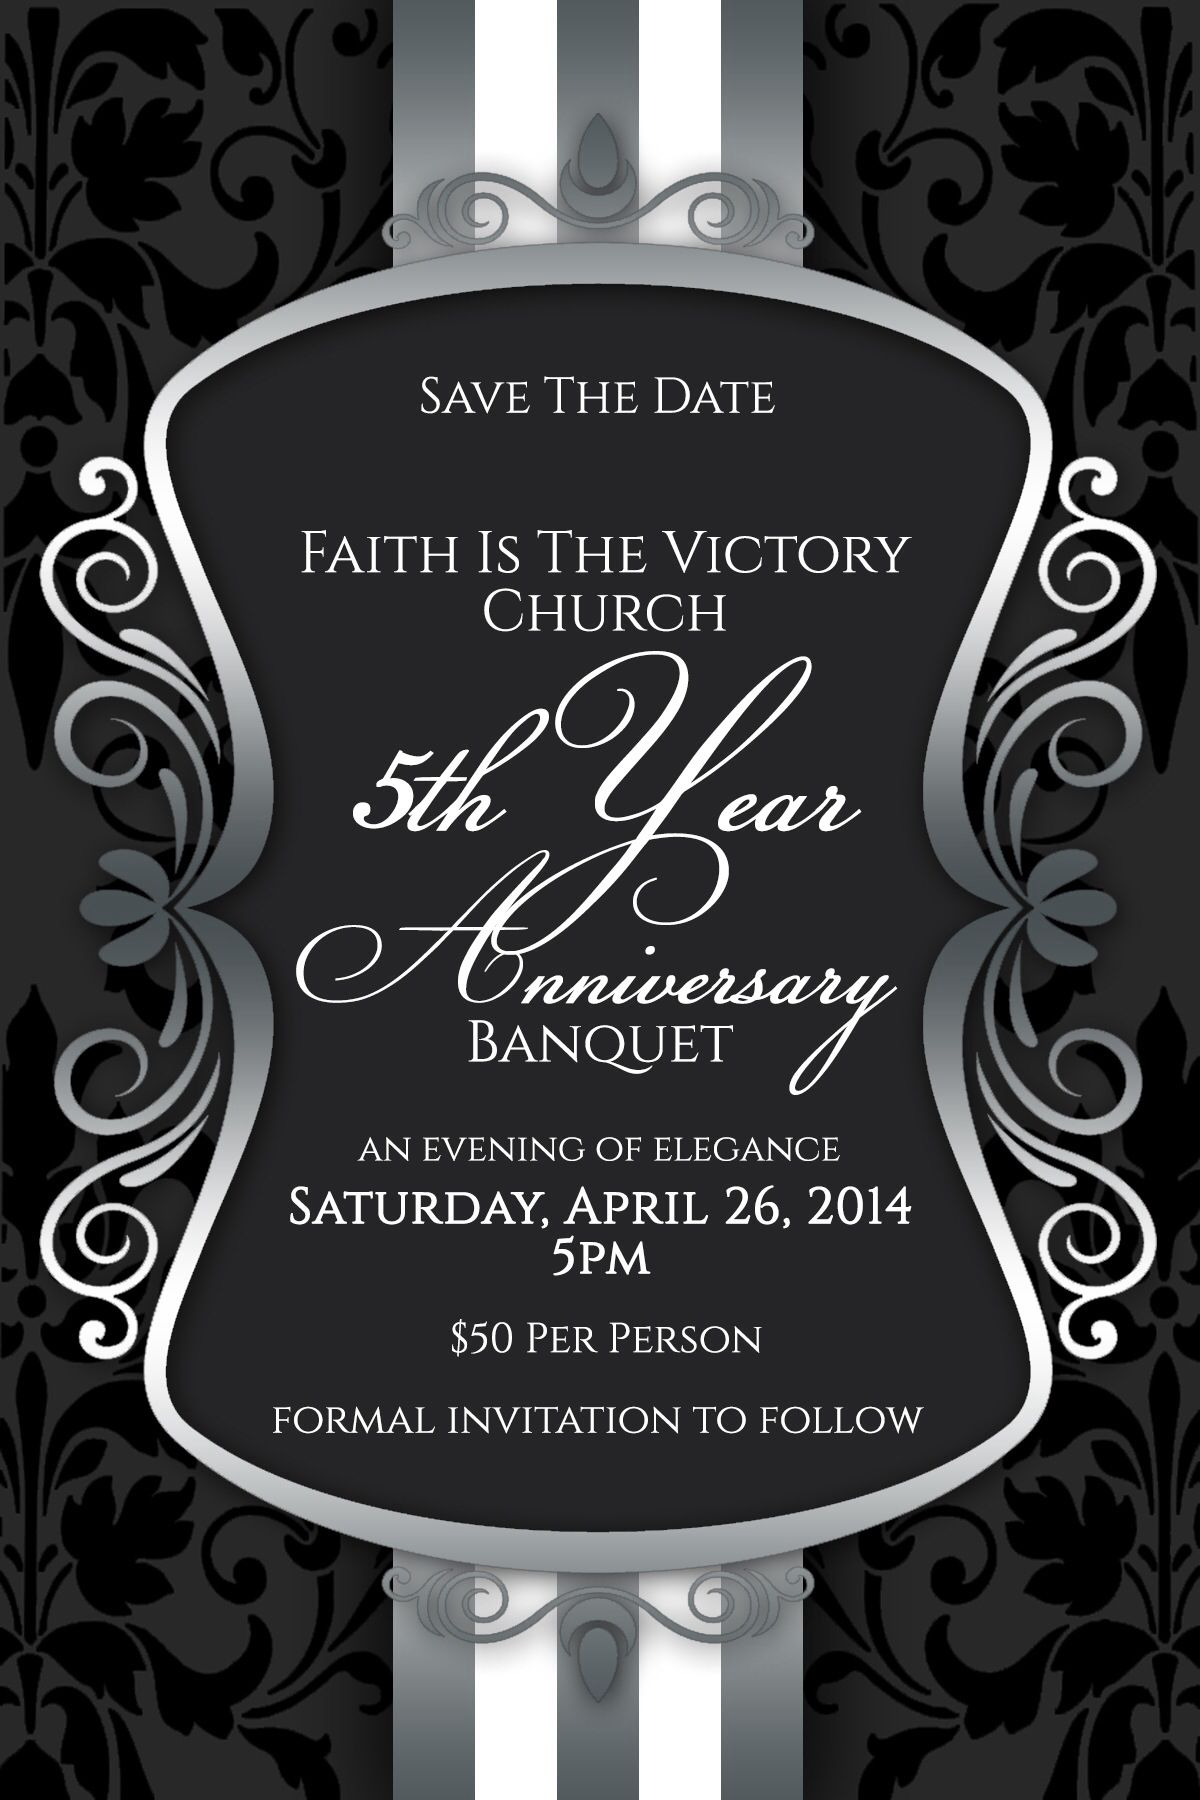 Save the date we invite you to join faith is the victory church as save the date we invite you to join faith is the victory church as we celebrate stopboris Images